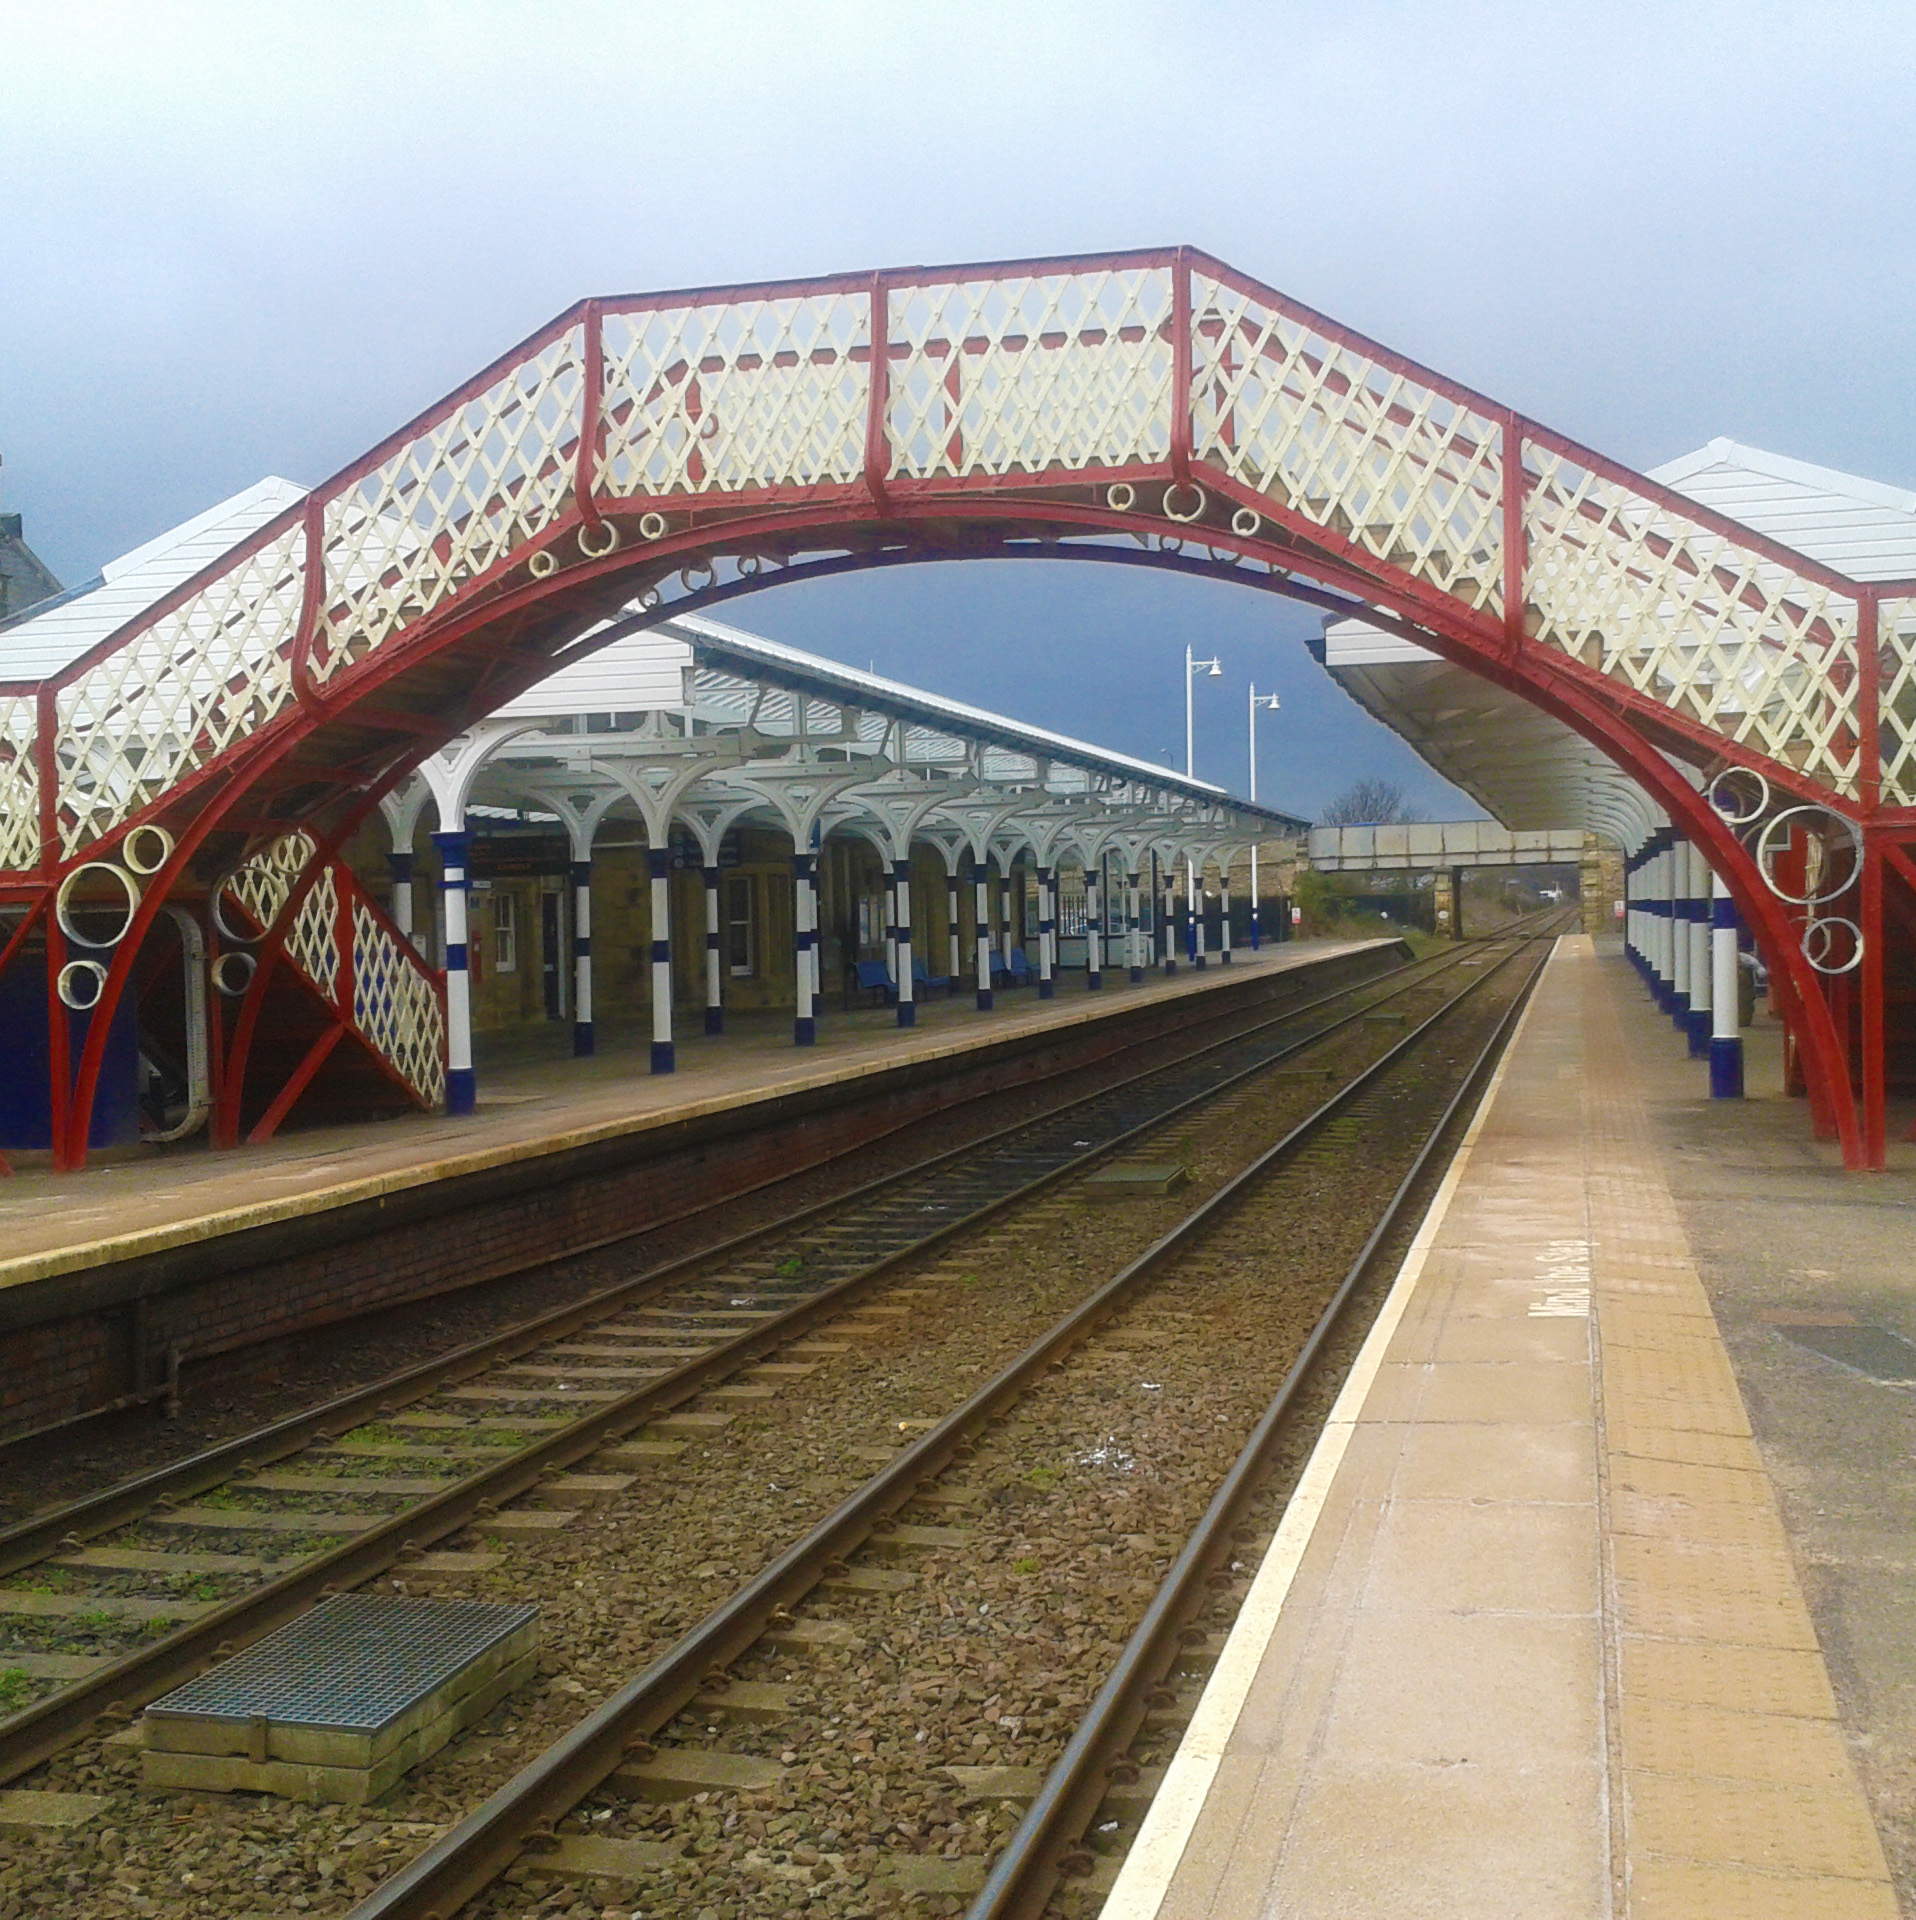 Hexham Railway Station, Scotland